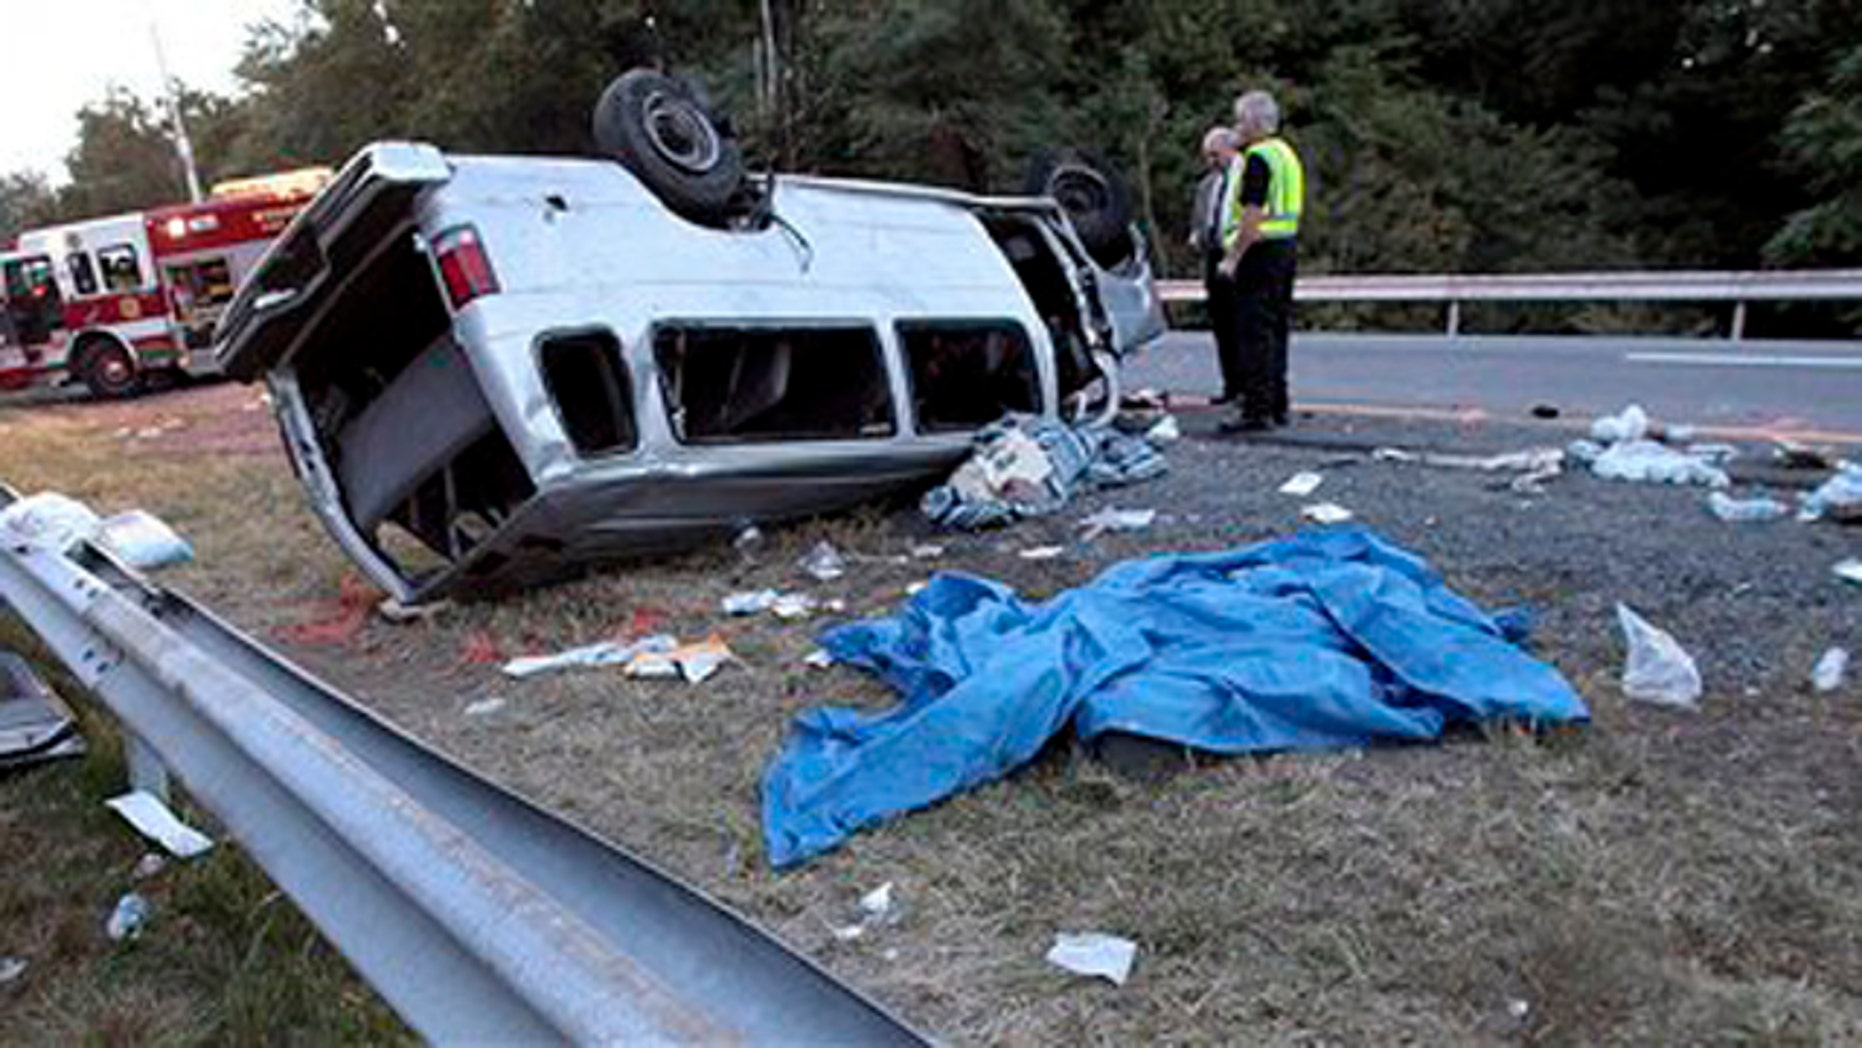 Sept. 18, 2010: State police investigate the scene of a fatal accident in Woodbury, N.Y. A passenger van carrying members of a church flipped over on the New York State Thruway on Saturday, killing at least six people and injuring eight others, authorities said.